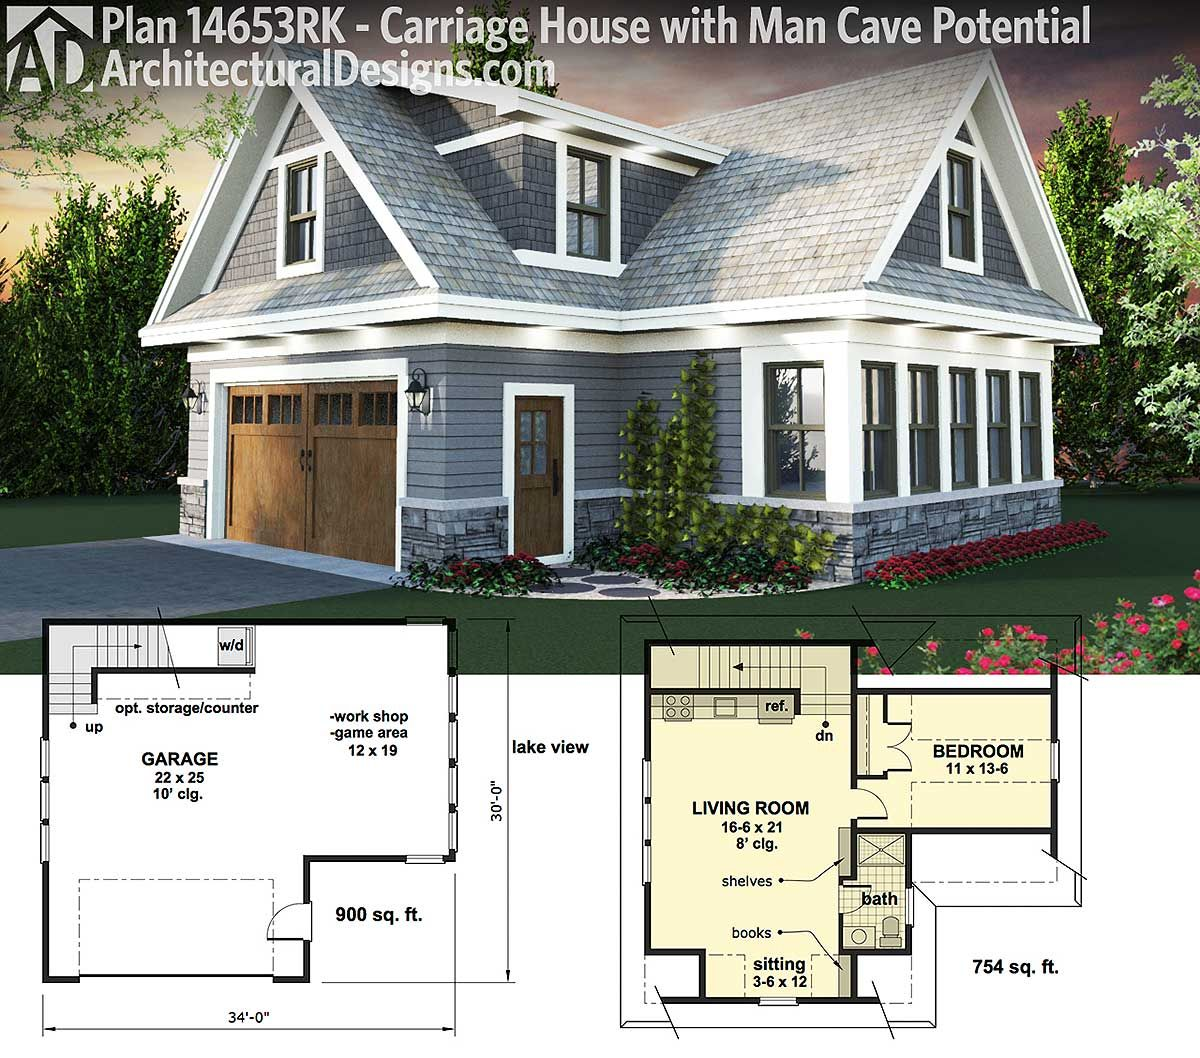 Plan 14653rk carriage house plan with man cave potential for Custom home floor plans with cost to build